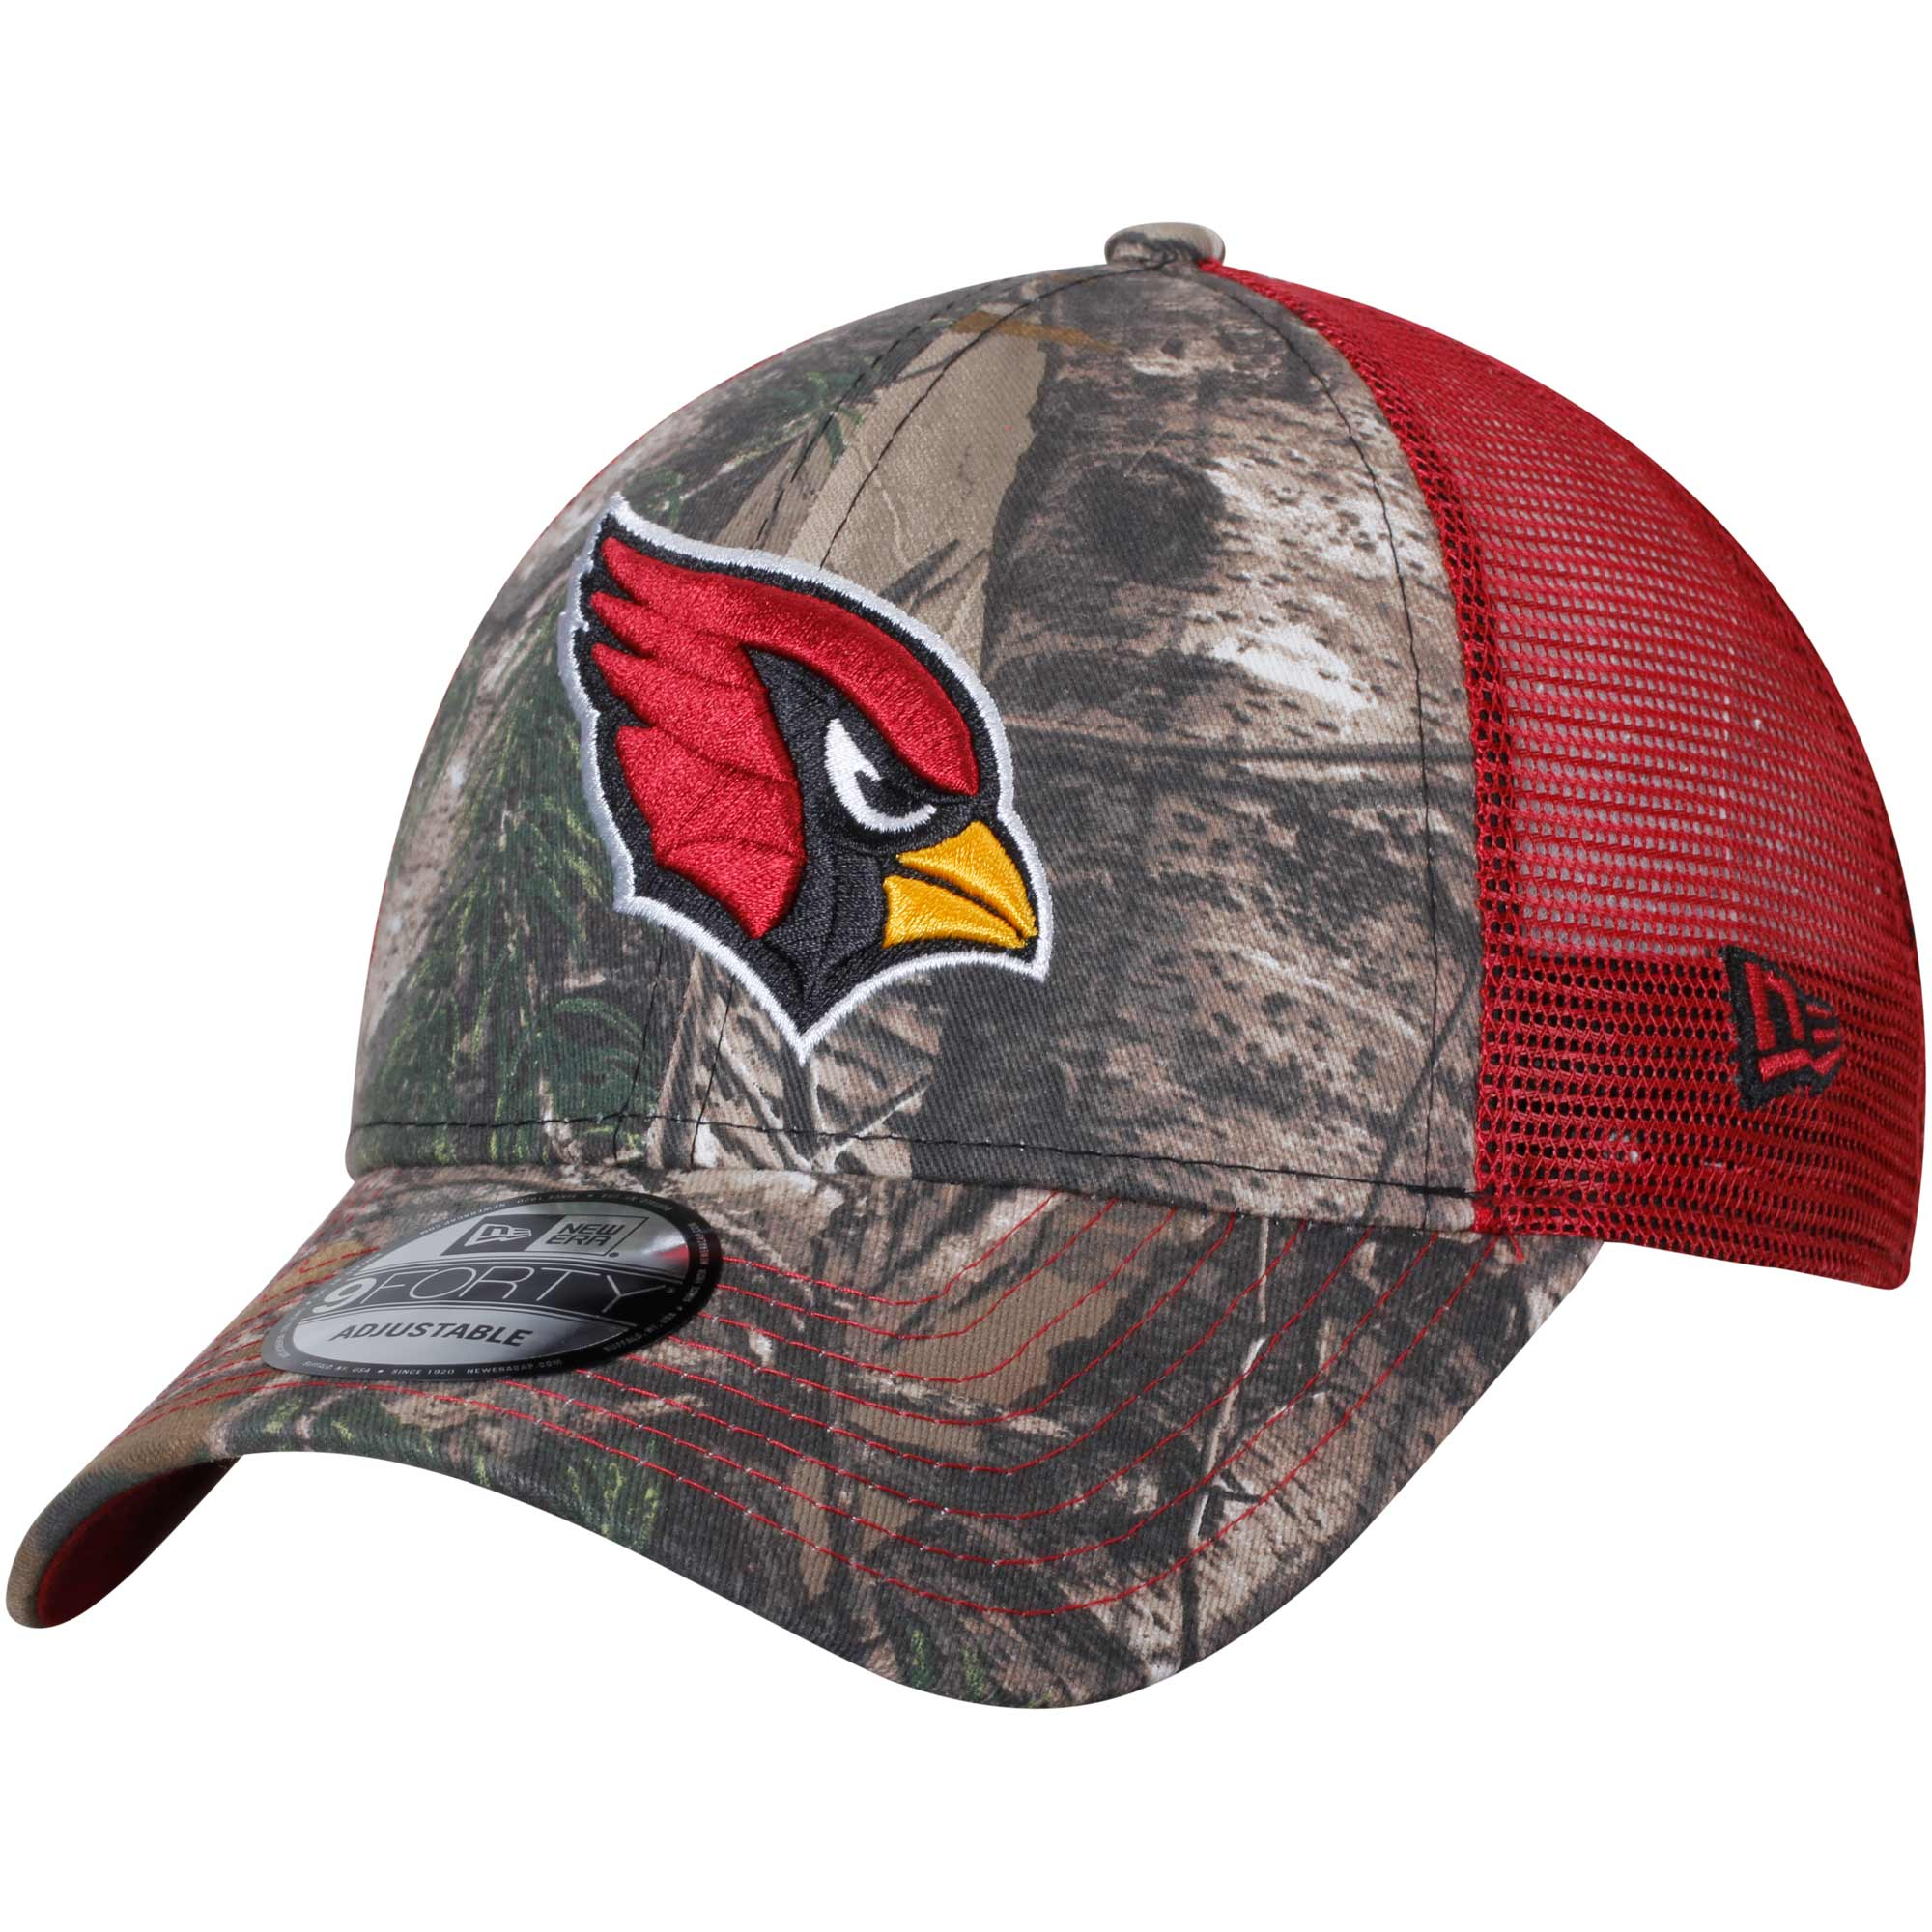 Arizona Cardinals New Era Trucker 9FORTY Adjustable Snapback Hat - Realtree Camo/Cardinal